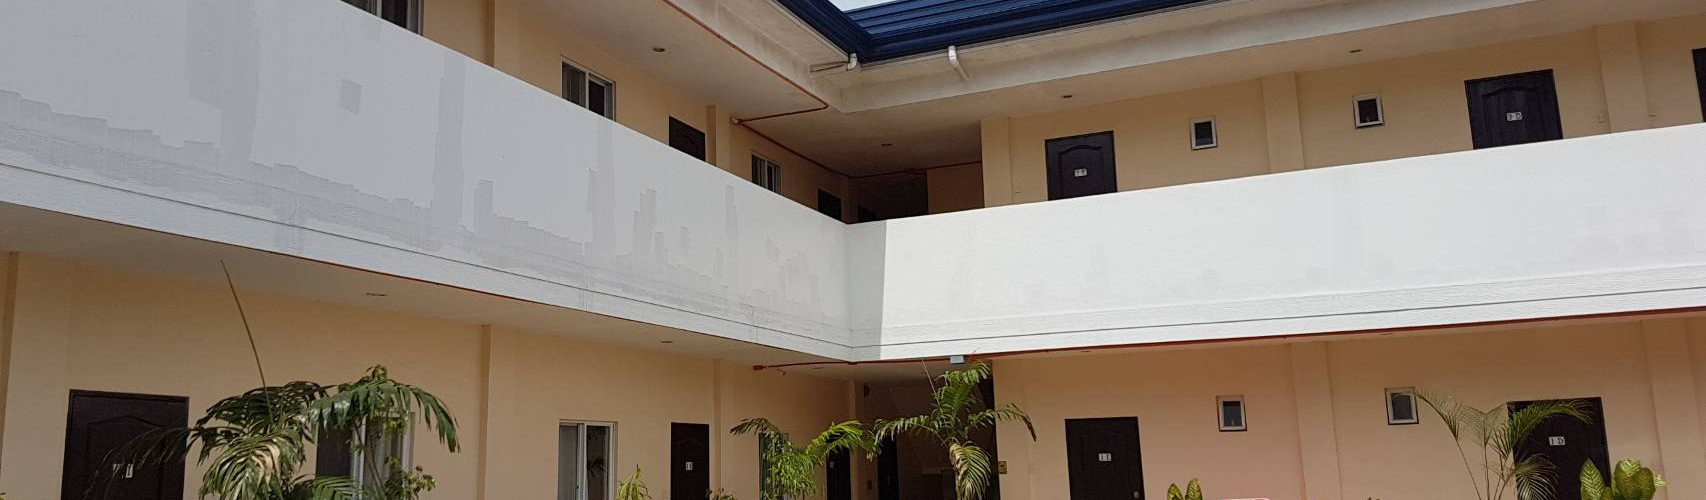 Trường Anh ngữ Pacifictree Academy - Cebu - Philippines